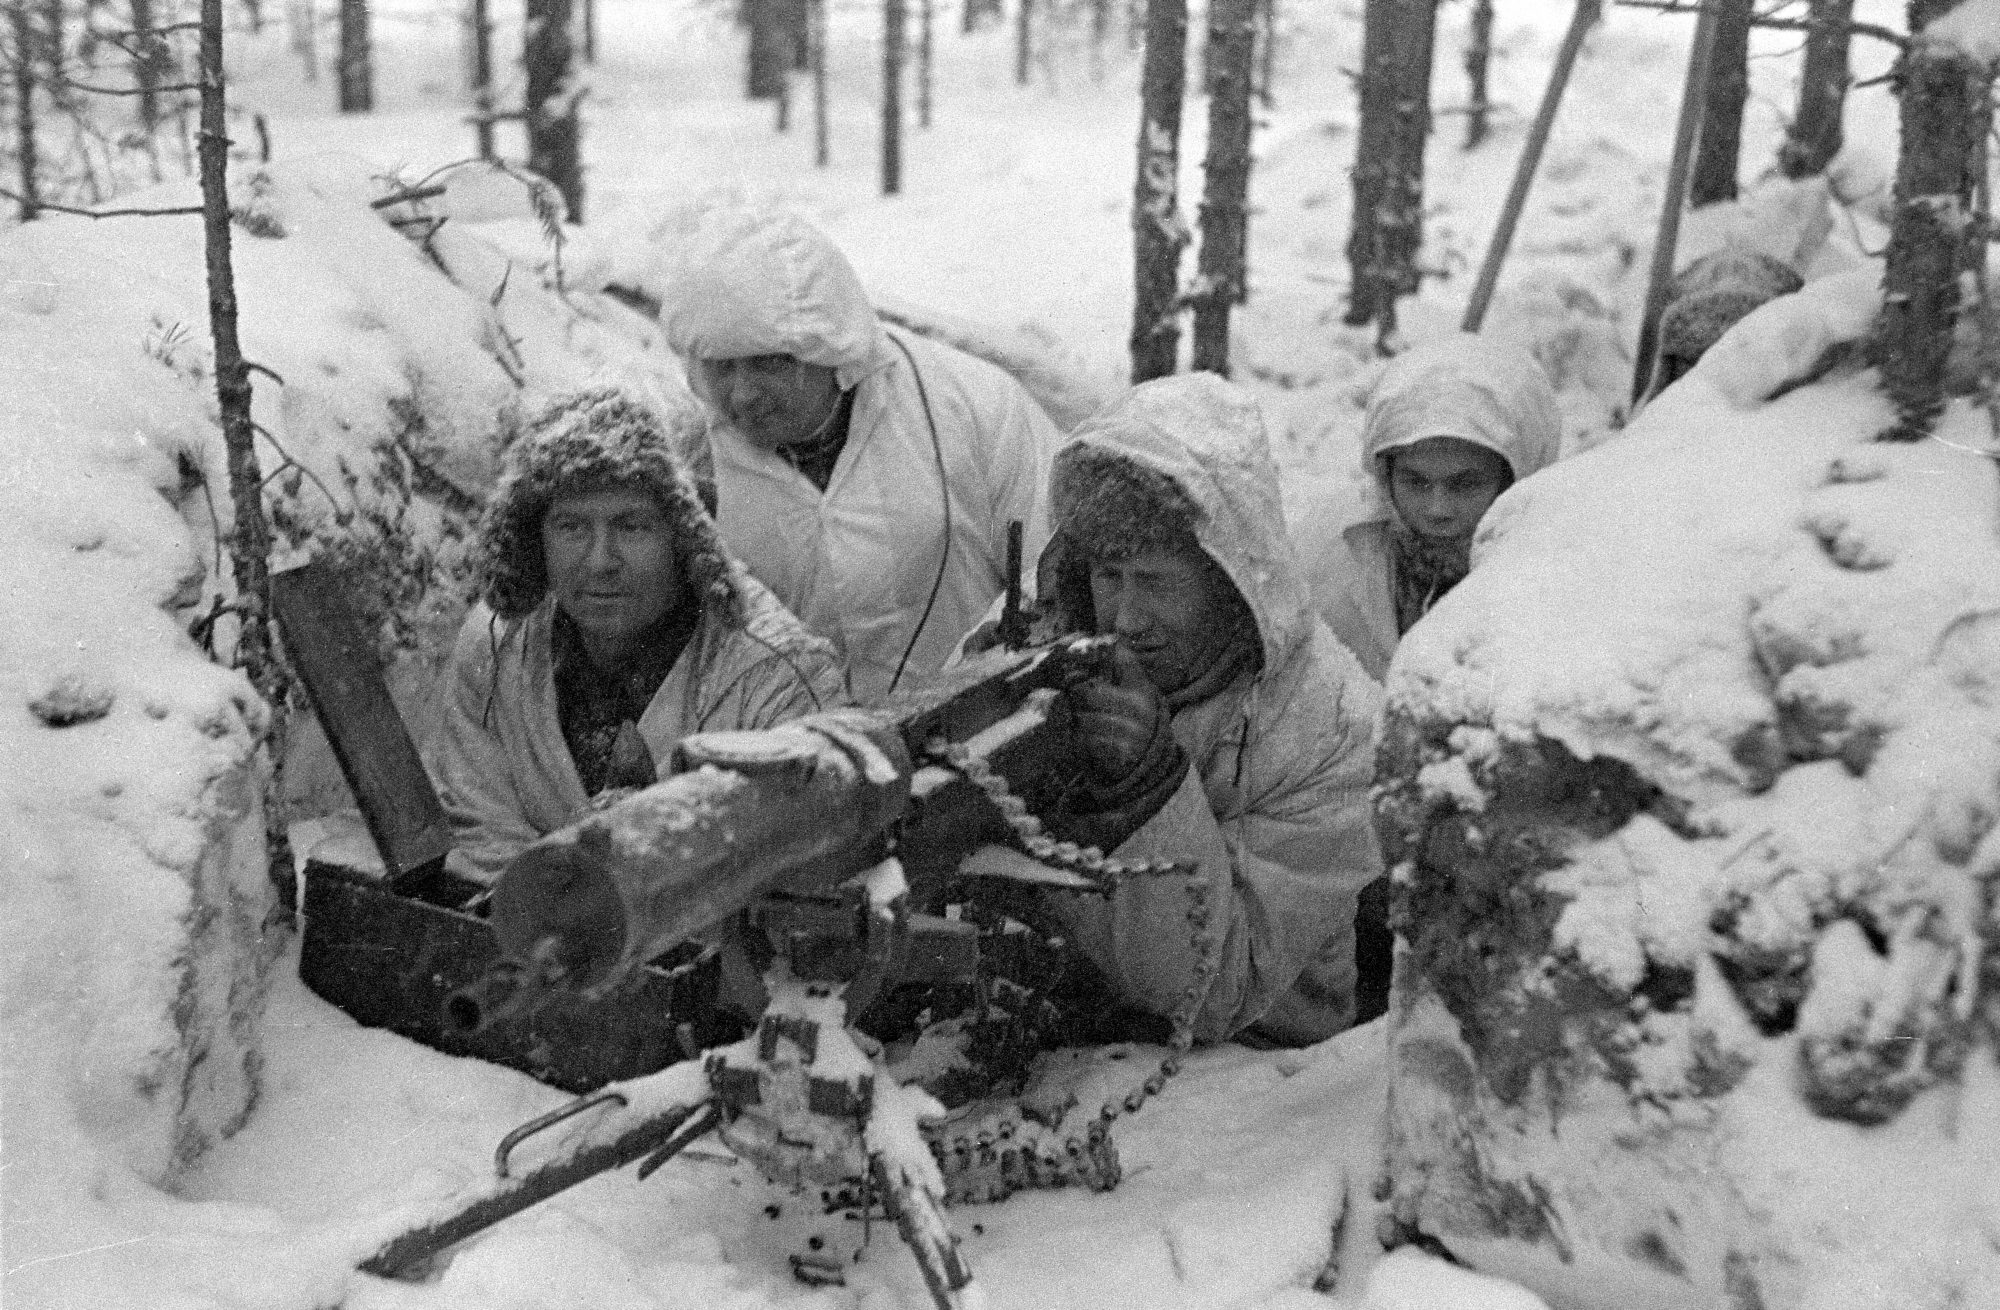 A Finnish Maxim M-32 machine gun nest during the Winter War, Photo courtesy of the Military Museum of Finland